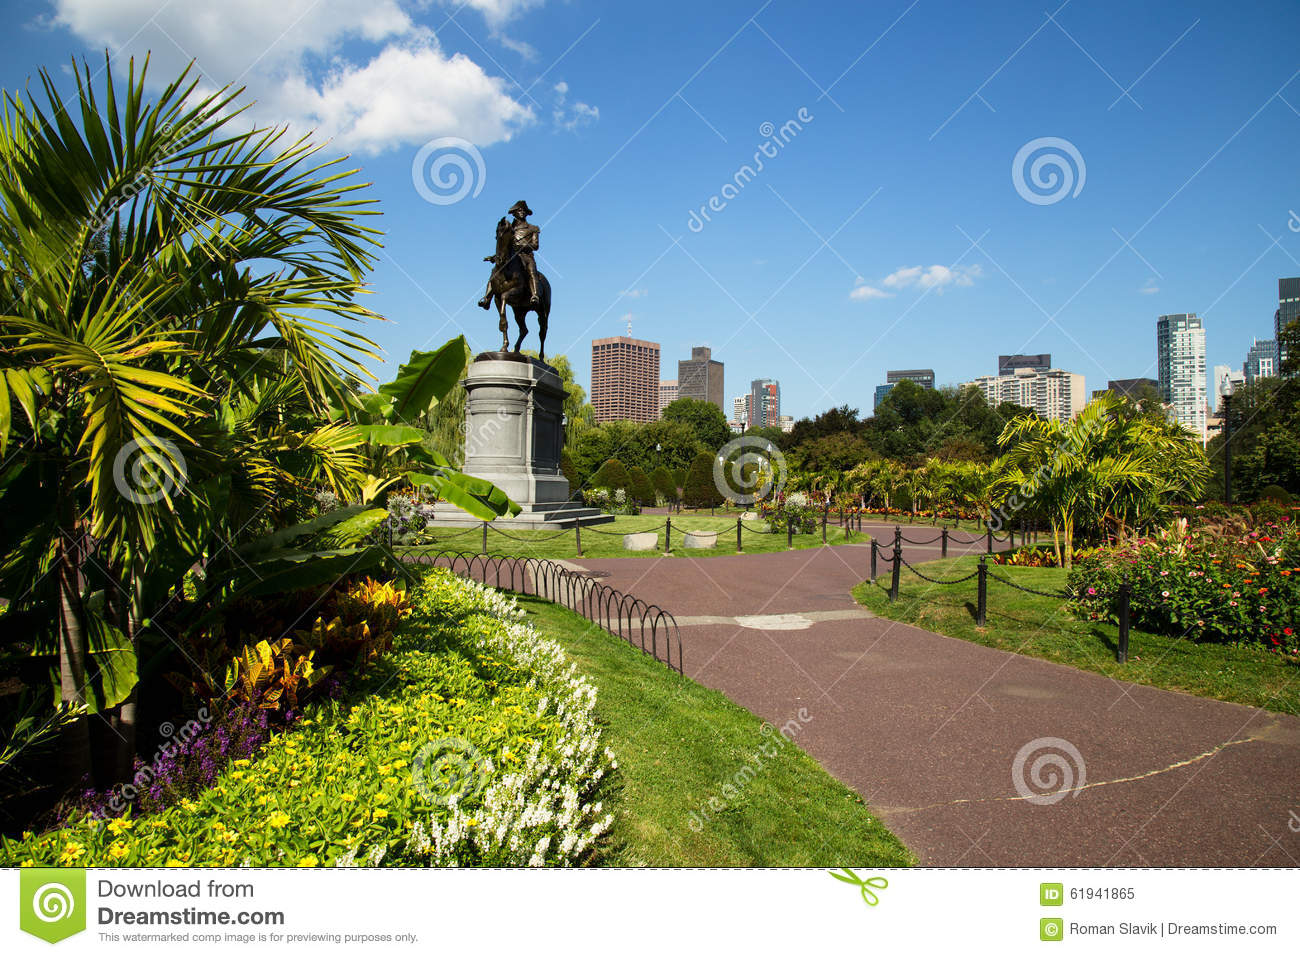 George washington statue dans le jardin public de boston for Dans le jardin